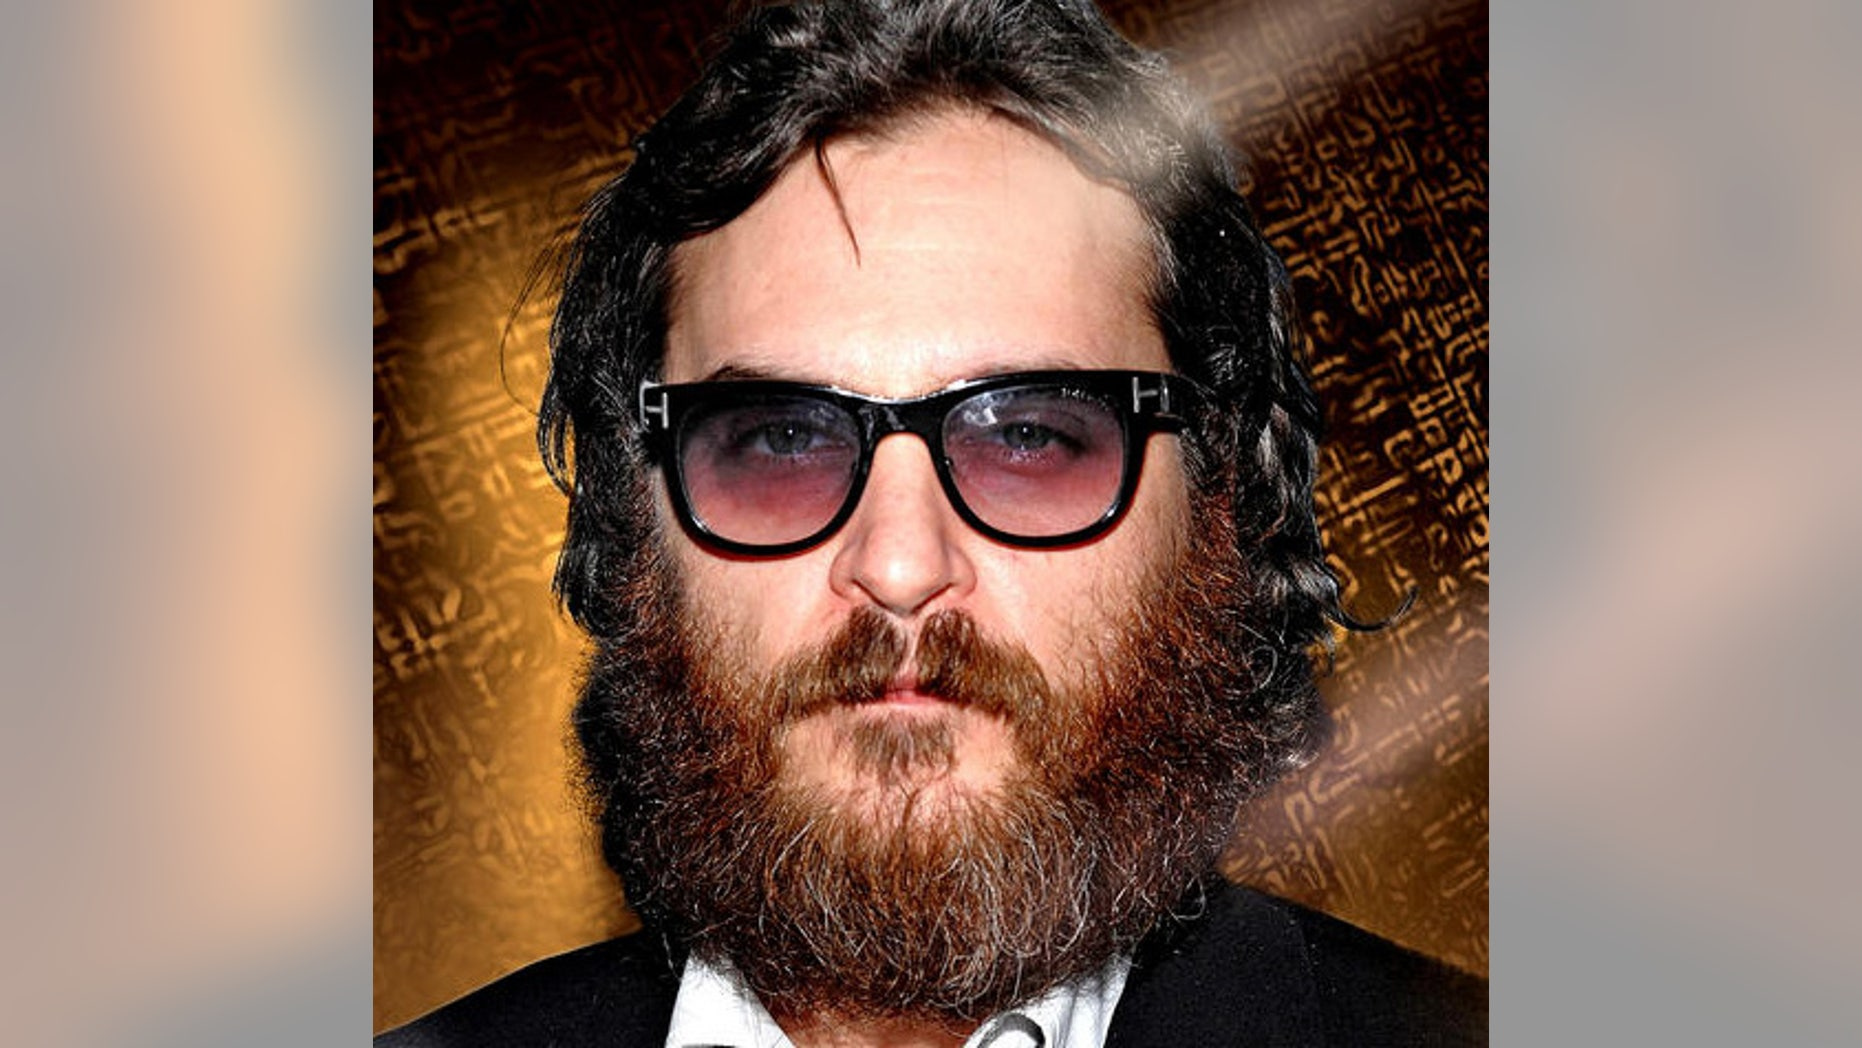 Actor Joaquin Phoenix attends a special screening of 'Two Lovers' hosted by The Cinema Society at the Landmark Sunshine Cinema, Wednesday, Feb. 11, 2009 in New York. (AP Photo/Evan Agostini)